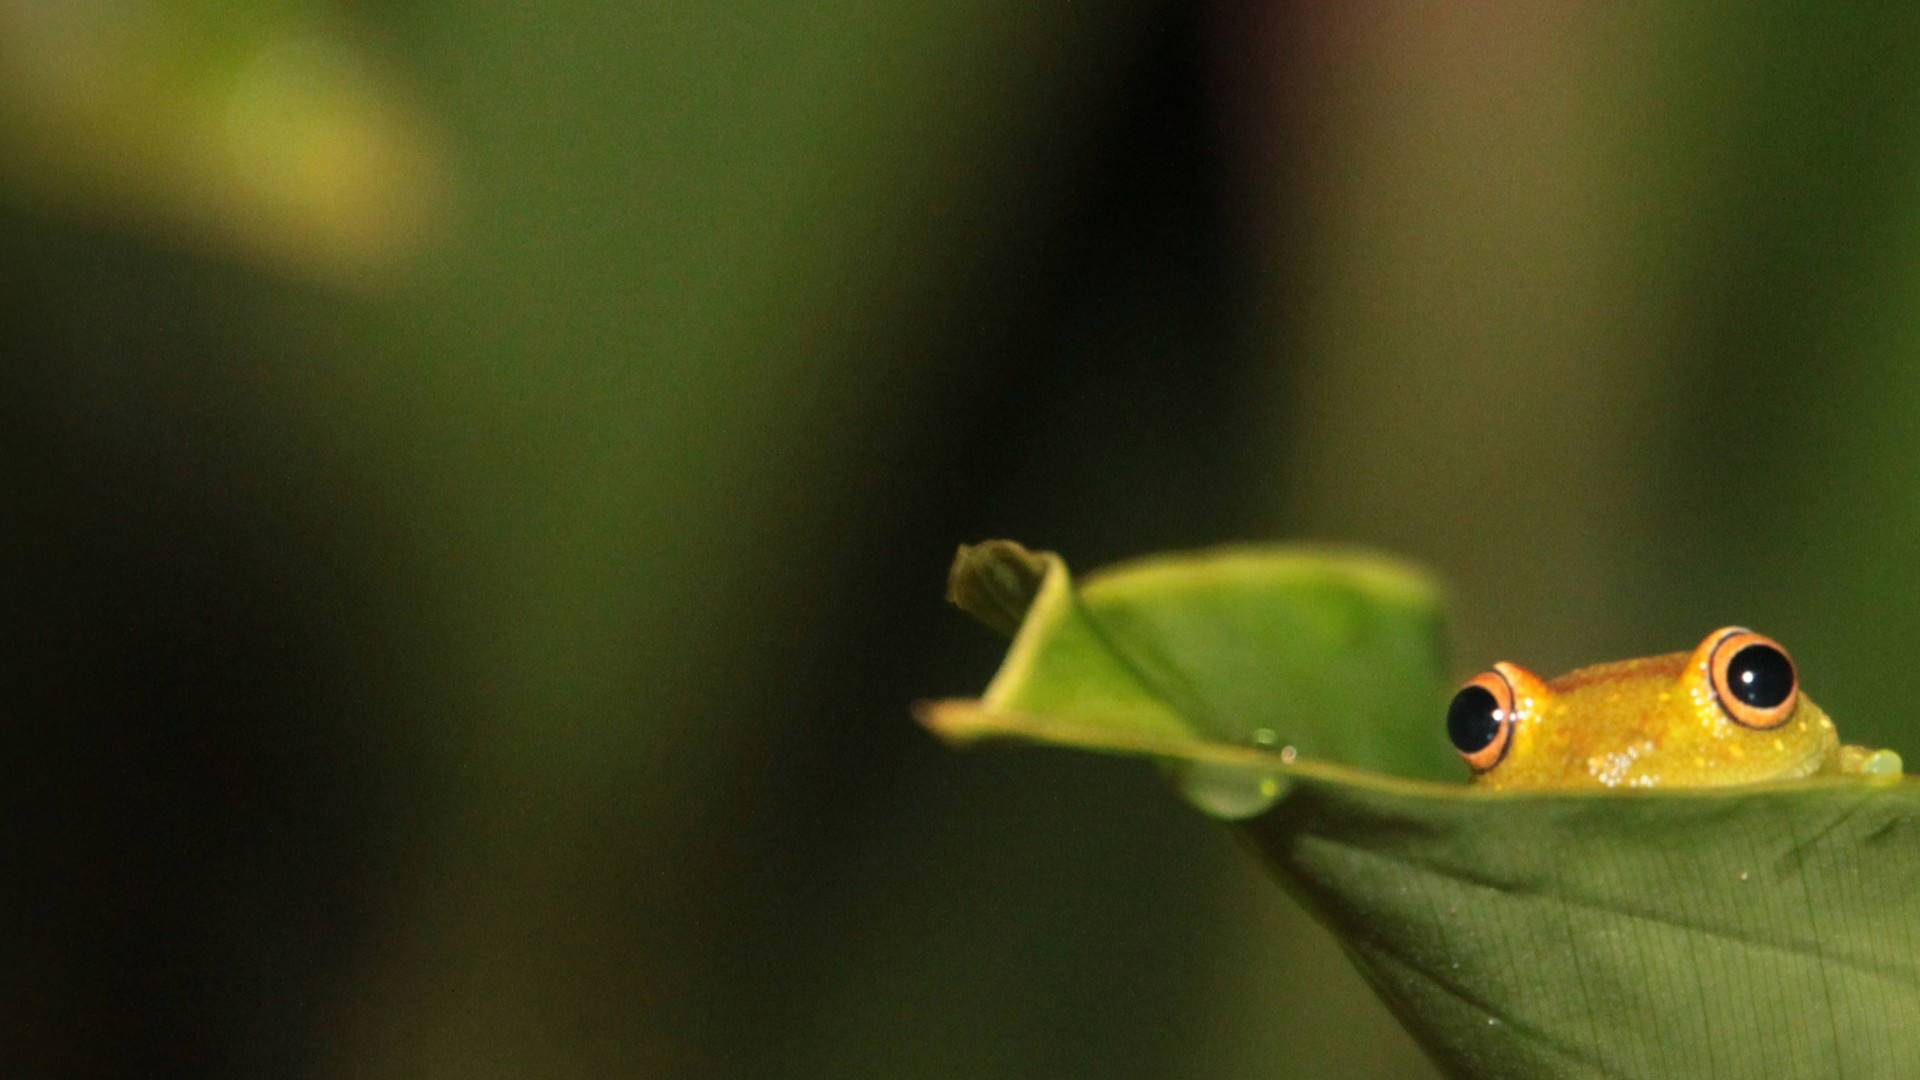 Frog HD Wallpapers High Quality Wallpapers 1920x1080